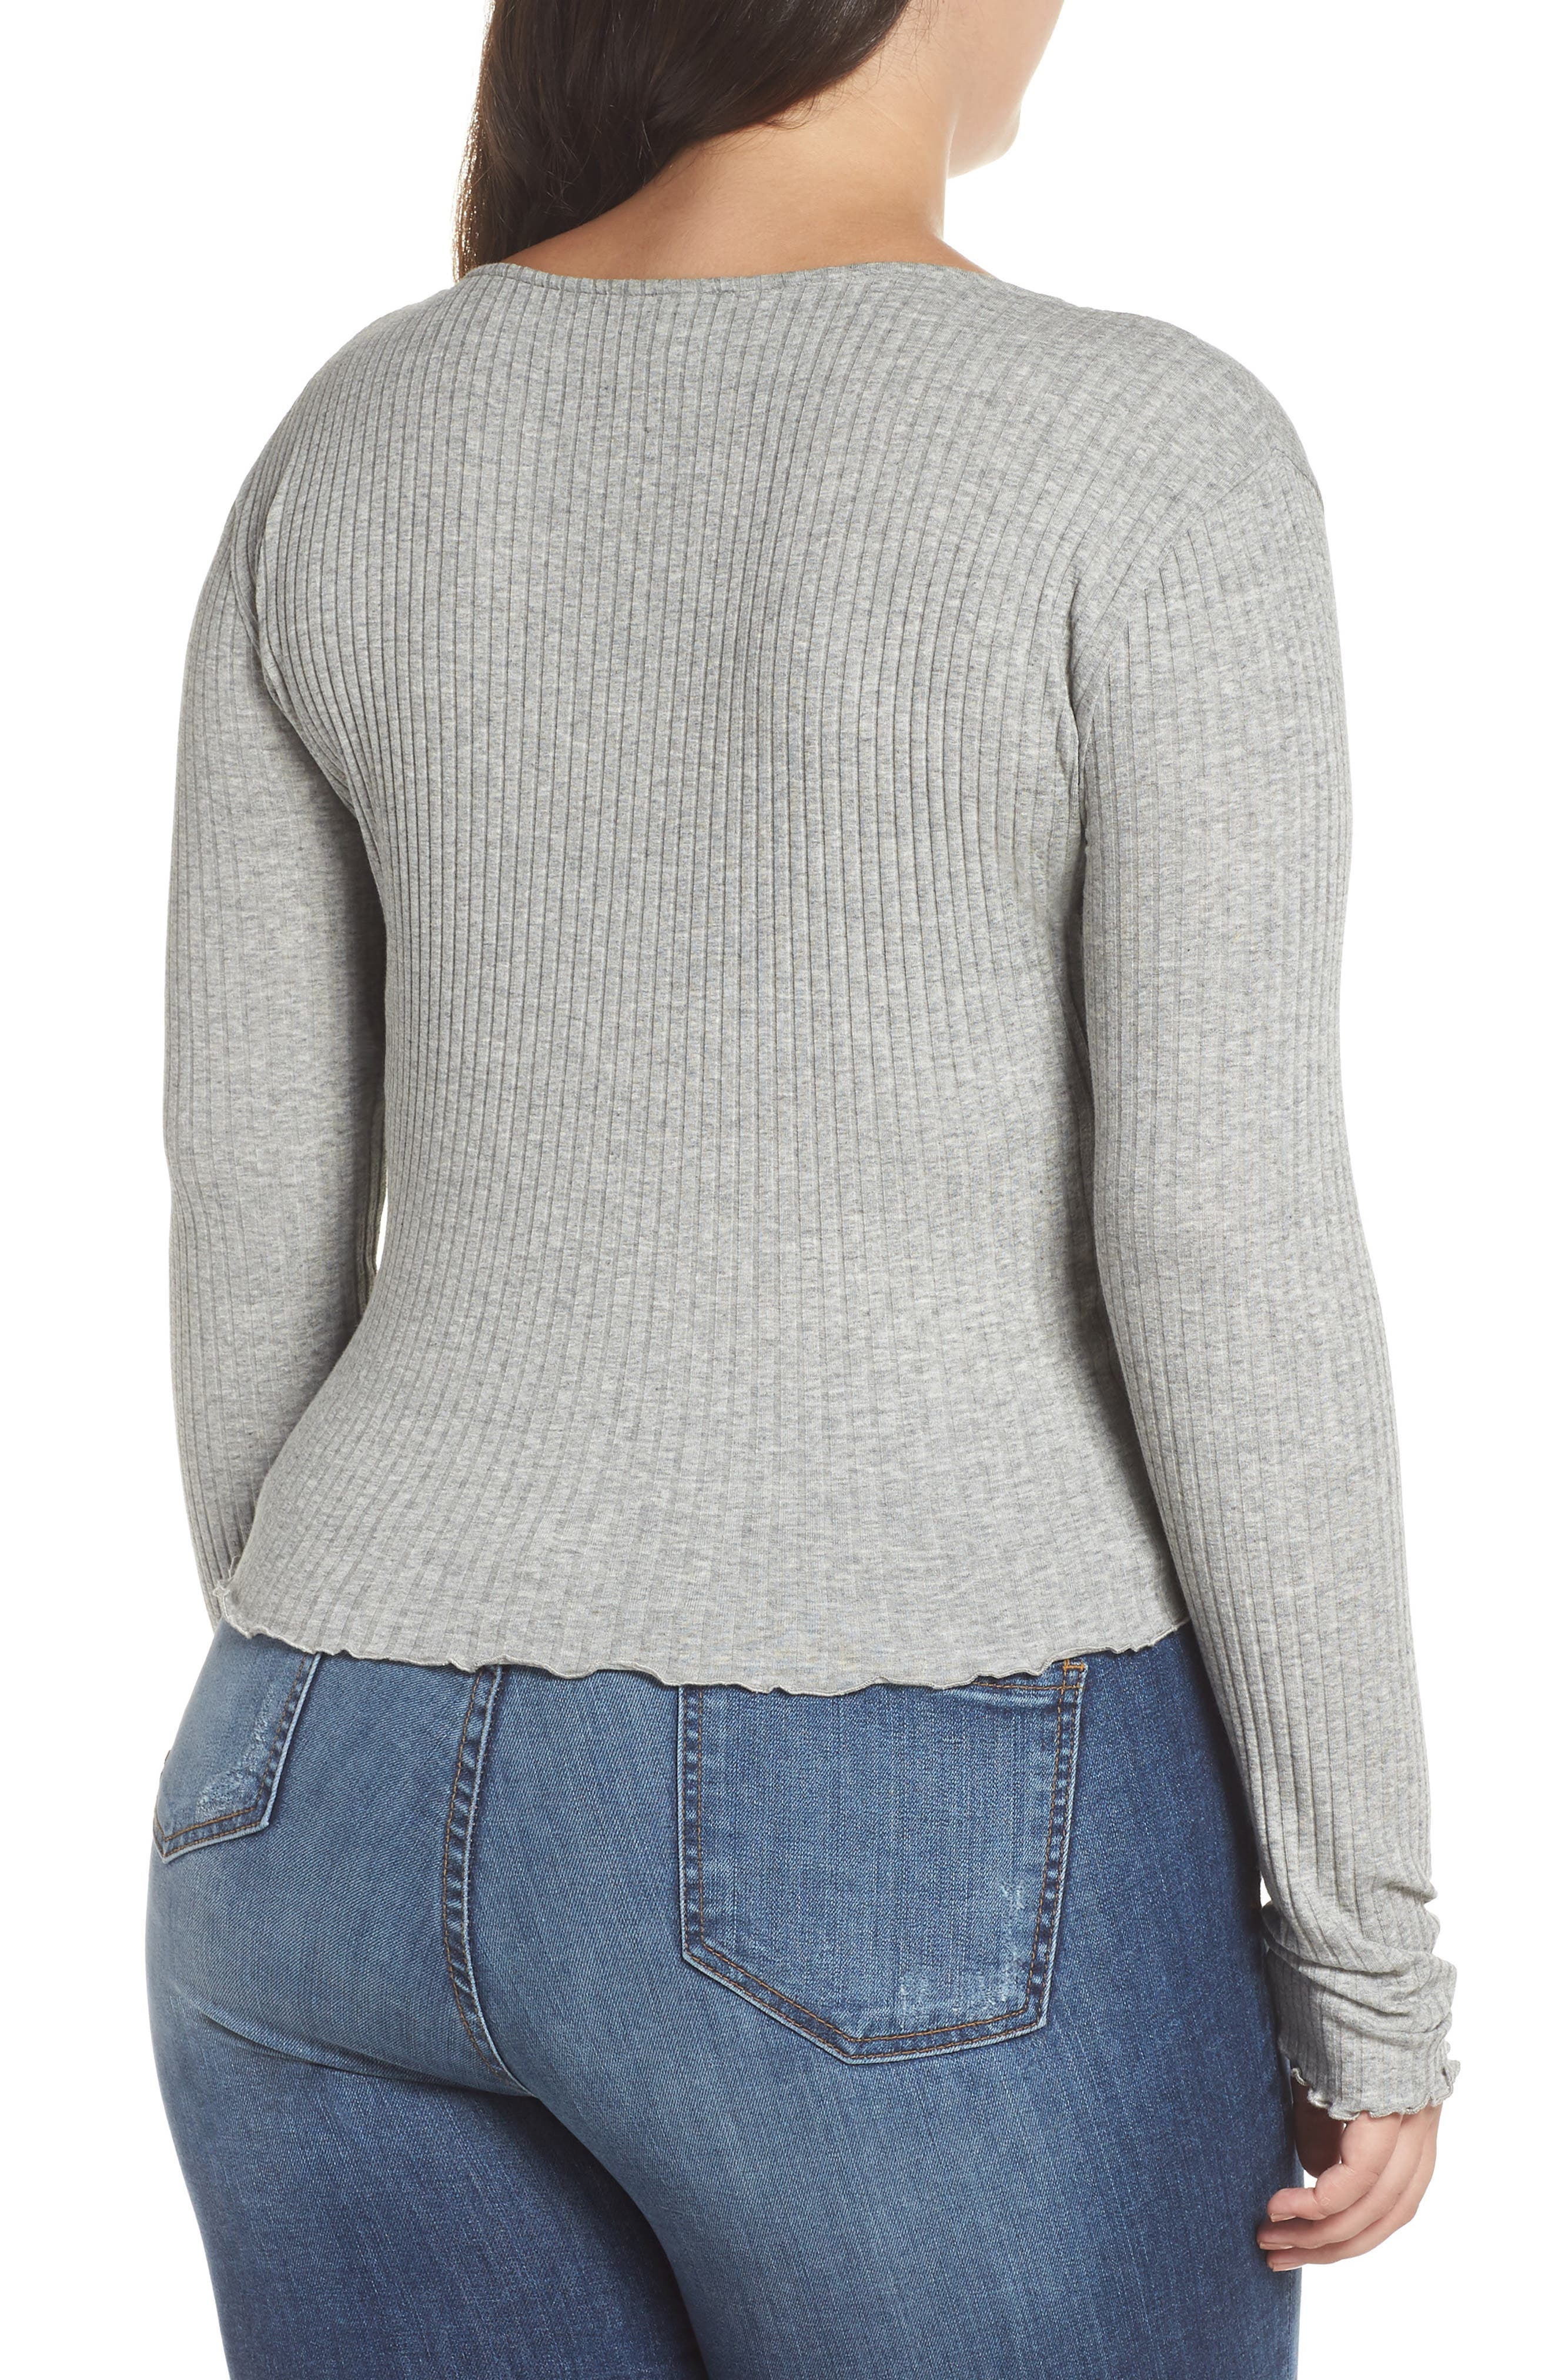 Lettuce Edge Ribbed Top,                             Alternate thumbnail 2, color,                             GREY MEDIUM HEATHER